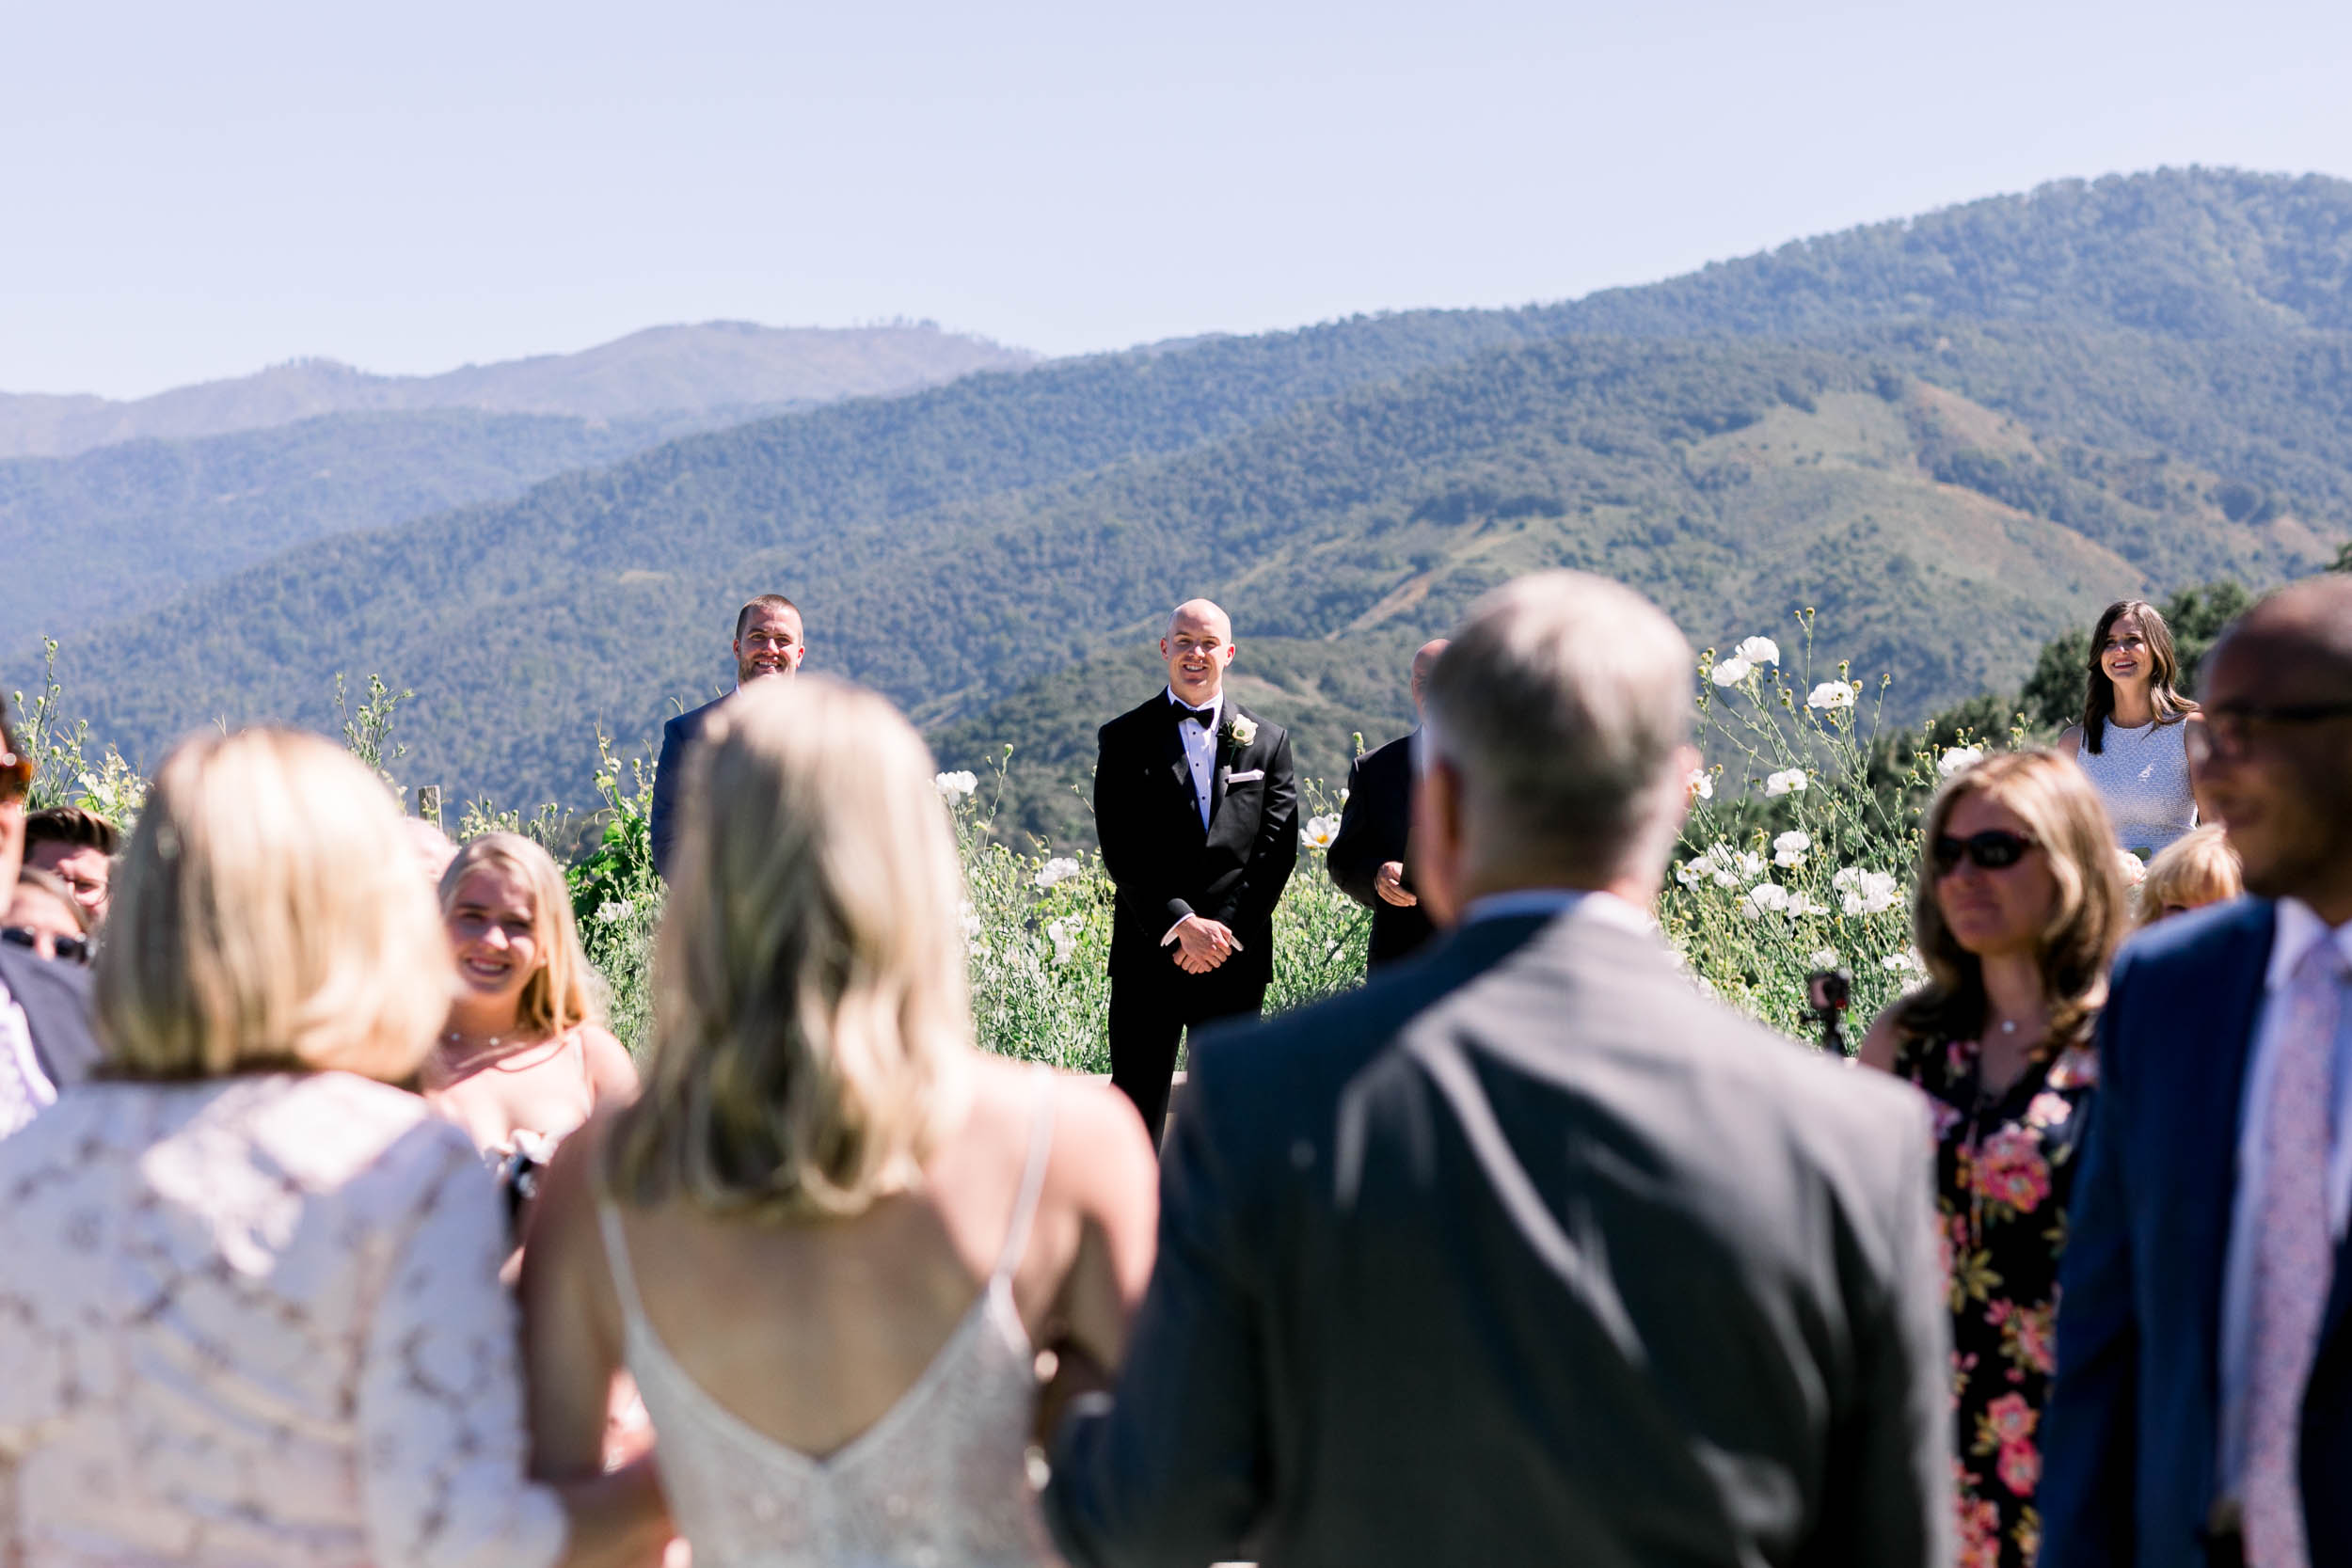 C+D_Holman Ranch Wedding_Carmel Valley_Buena Lane Photography_060619_ER237.jpg